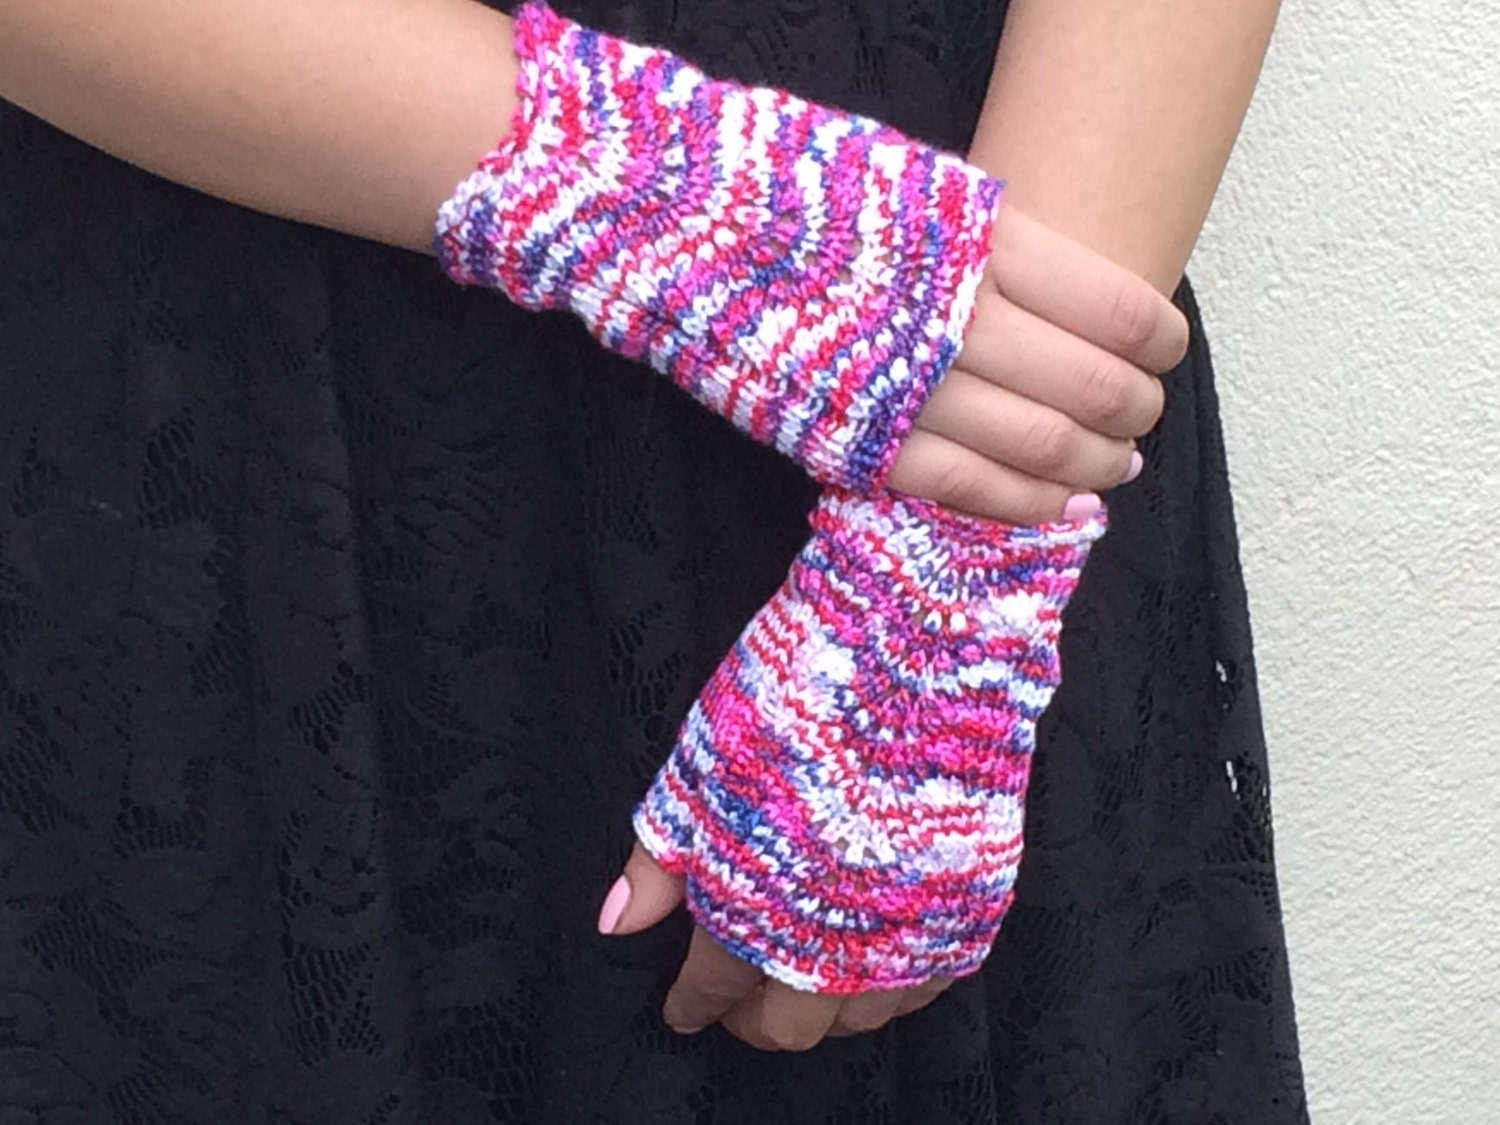 Fingerless gloves for musicians - Previous Image Next Image